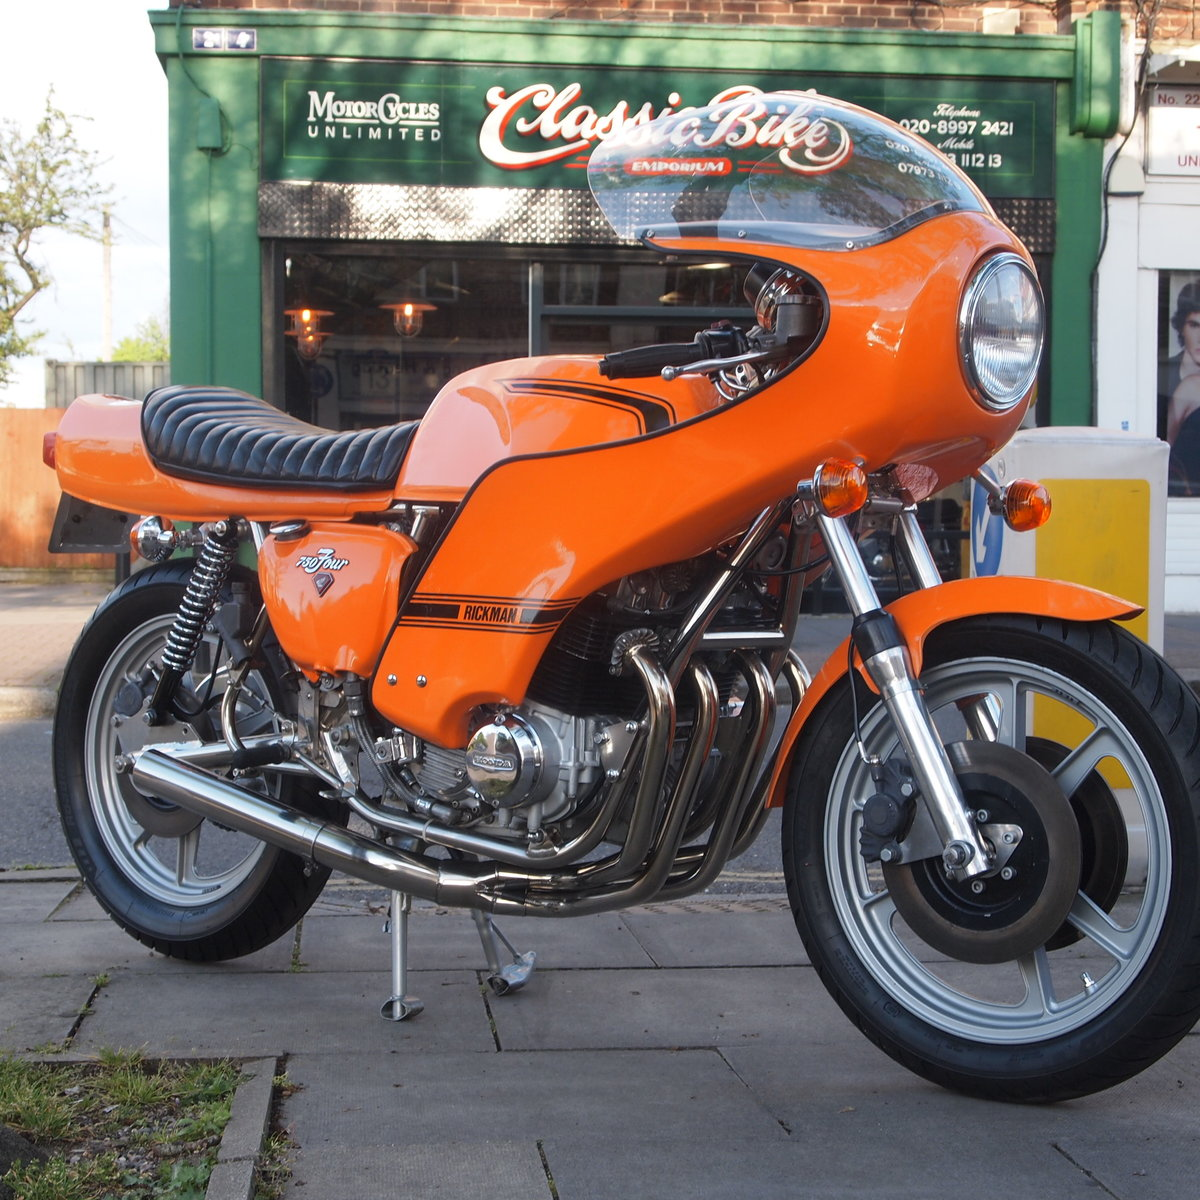 1976 Rickman CR750 Factory Built In January 1977 For Sale (picture 4 of 6)